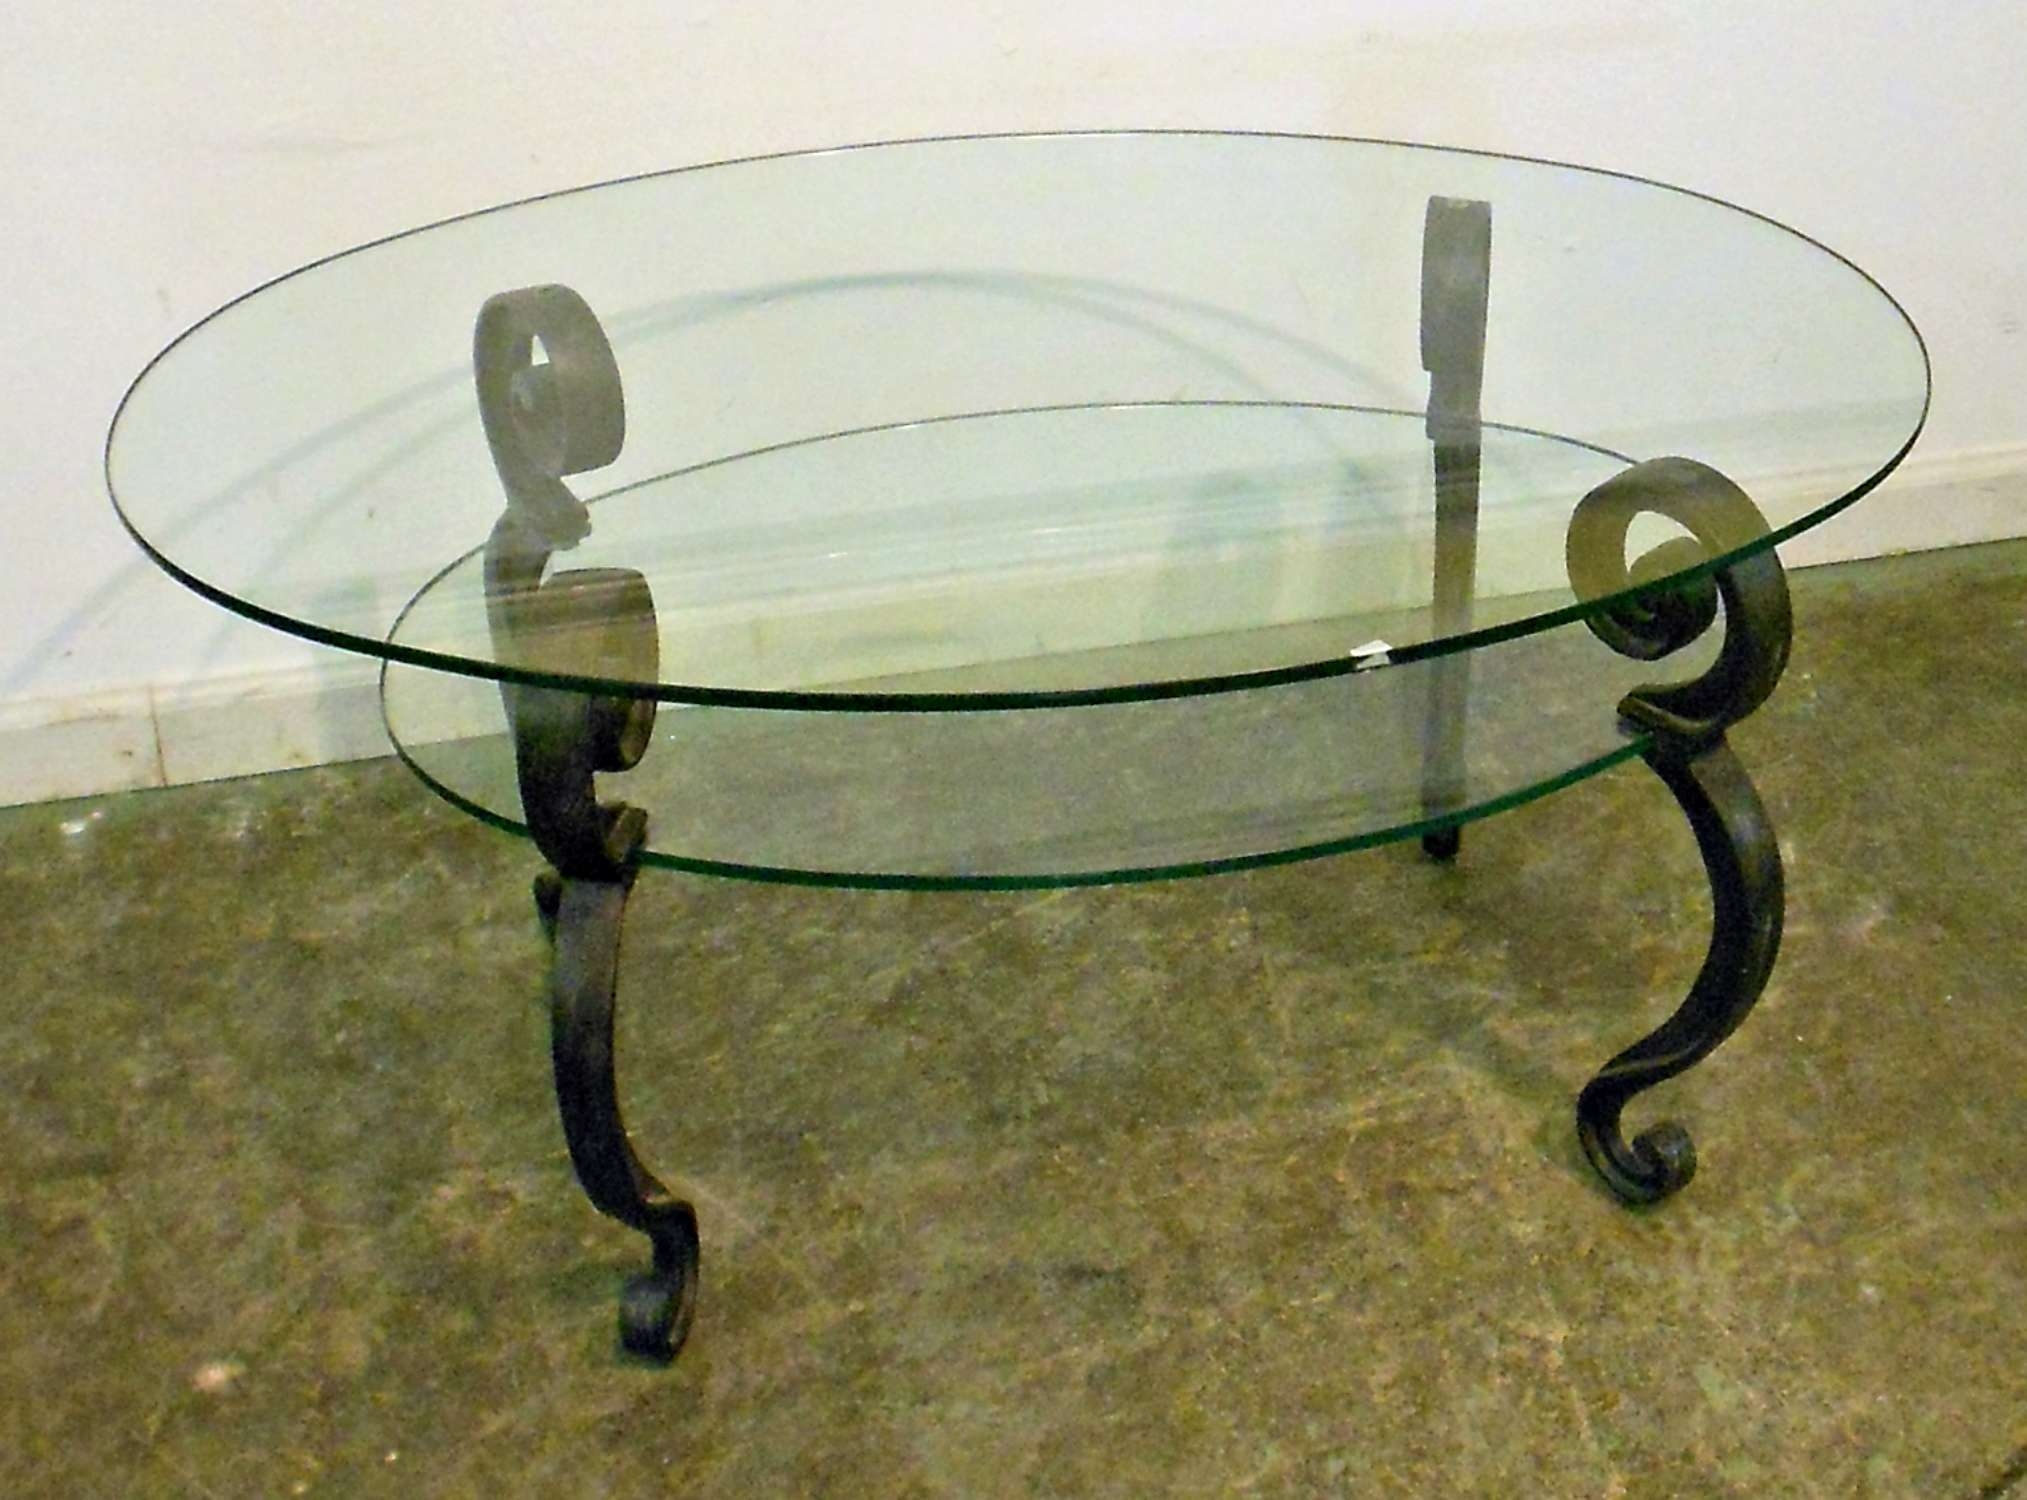 Vintage Glass Top Coffee Table With Black Metal Legs And Shelves With Regard To Popular Antique Glass Top Coffee Tables (View 5 of 20)